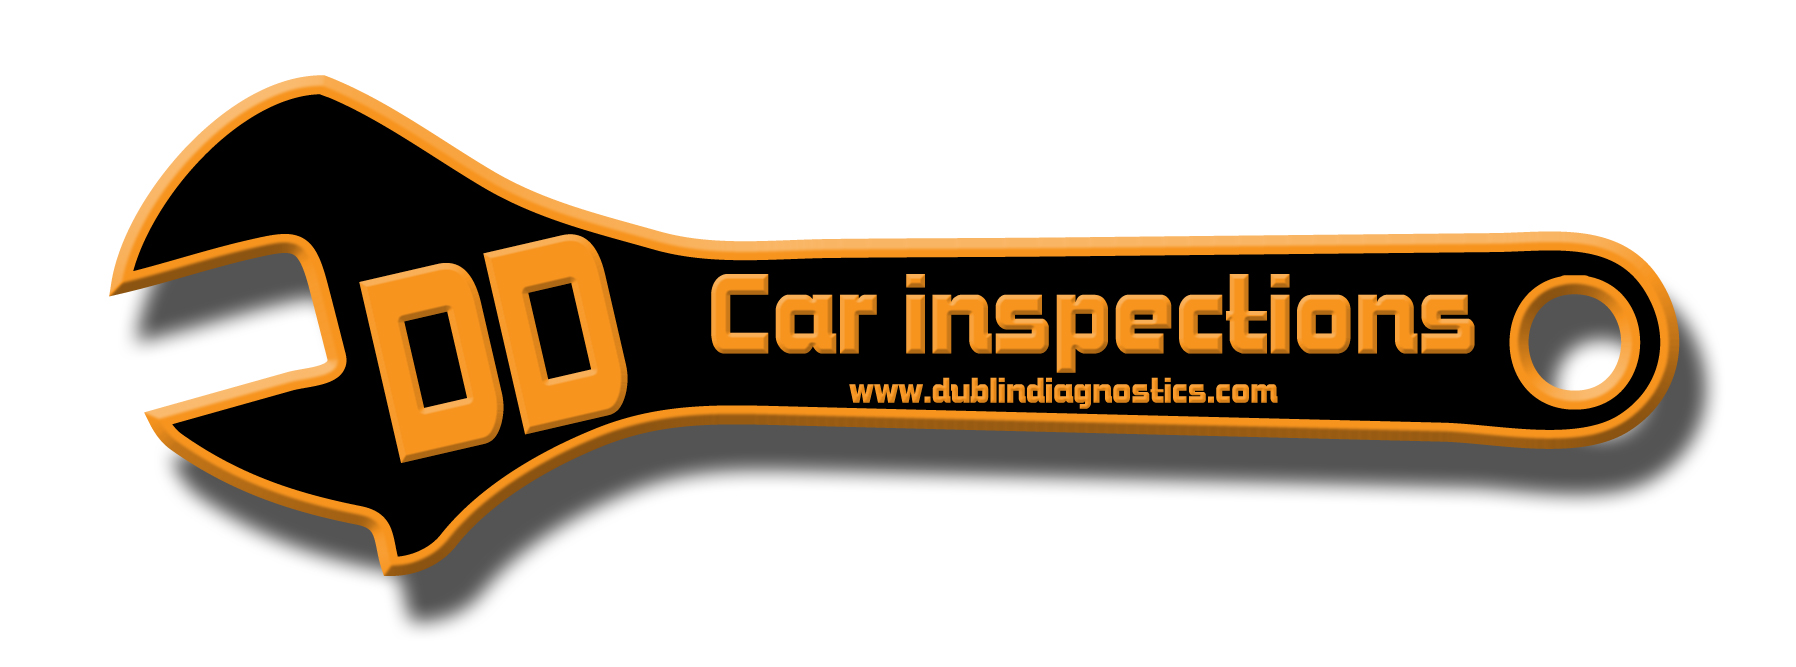 Independent Car inspection & diagnostics